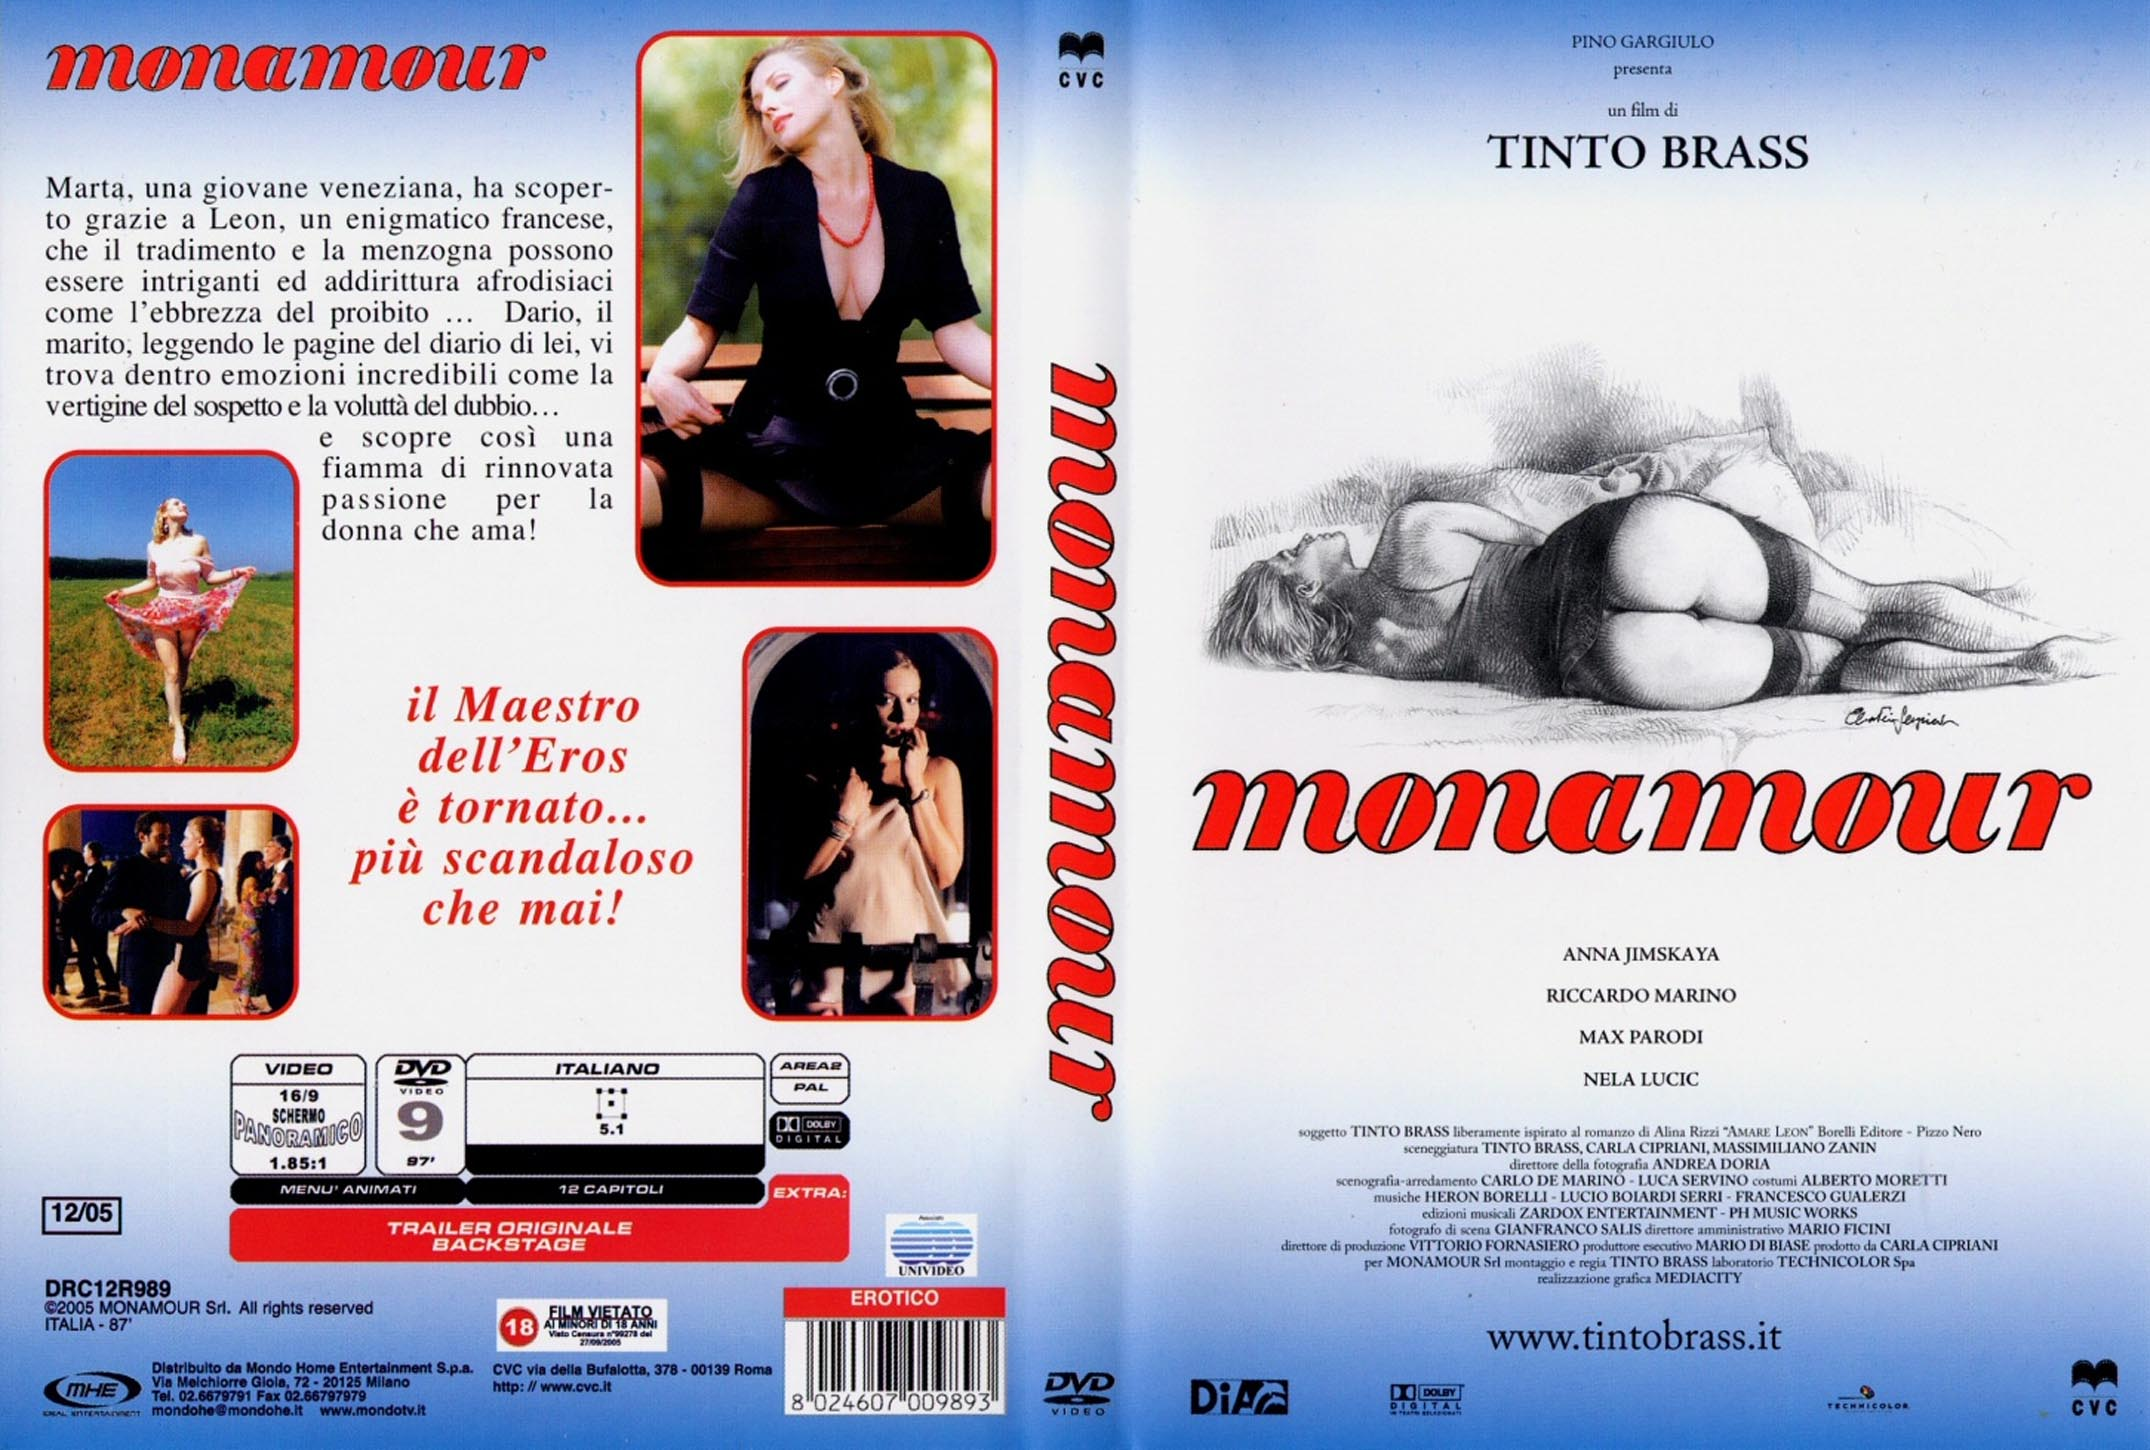 film erotici striming trova chat